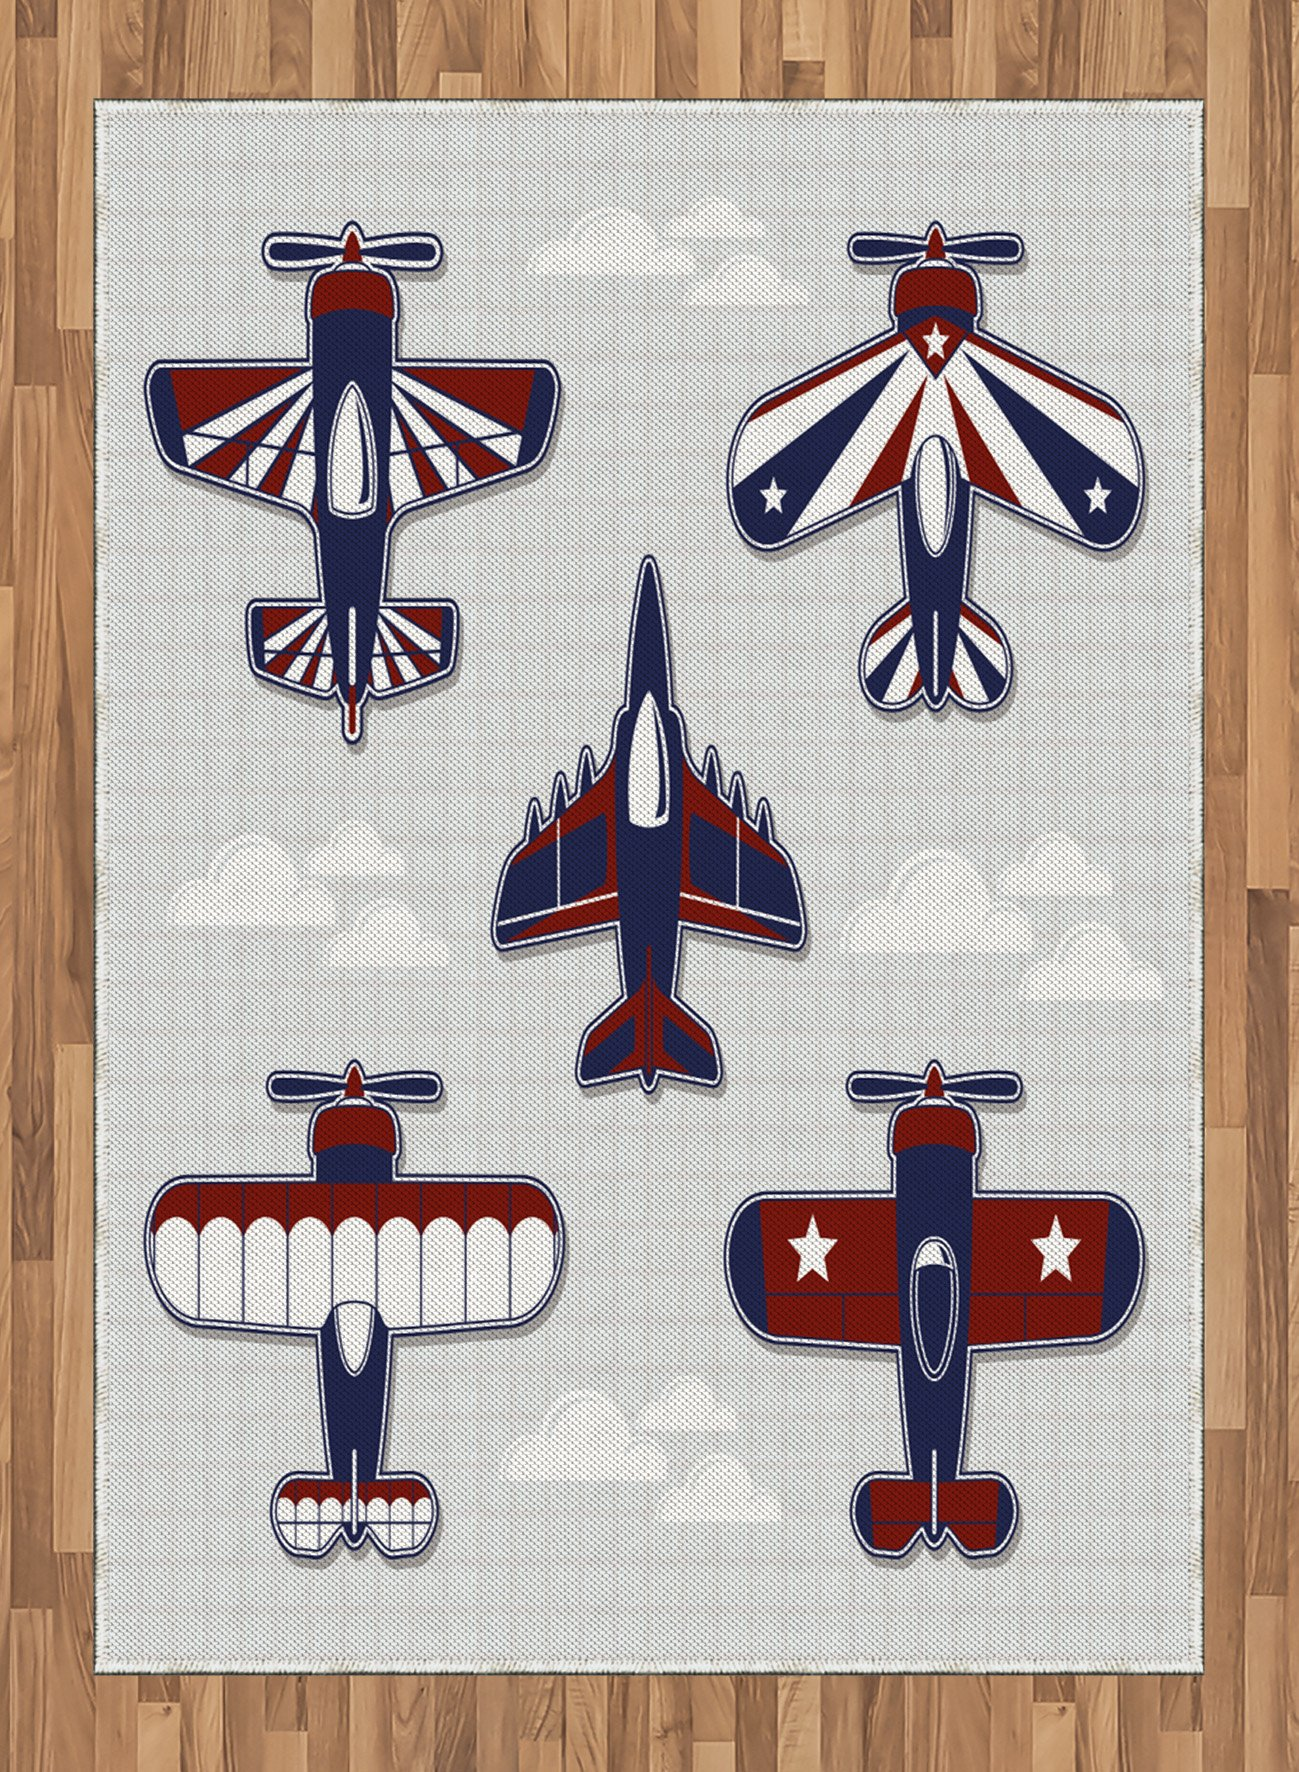 Boy's Room Area Rug by Lunarable, America Inspired Toy Planes with Stripes and Stars War Plane Show Plane, Flat Woven Accent Rug for Living Room Bedroom Dining Room, 5.2 x 7.5 FT, Red White Blue by Lunarable